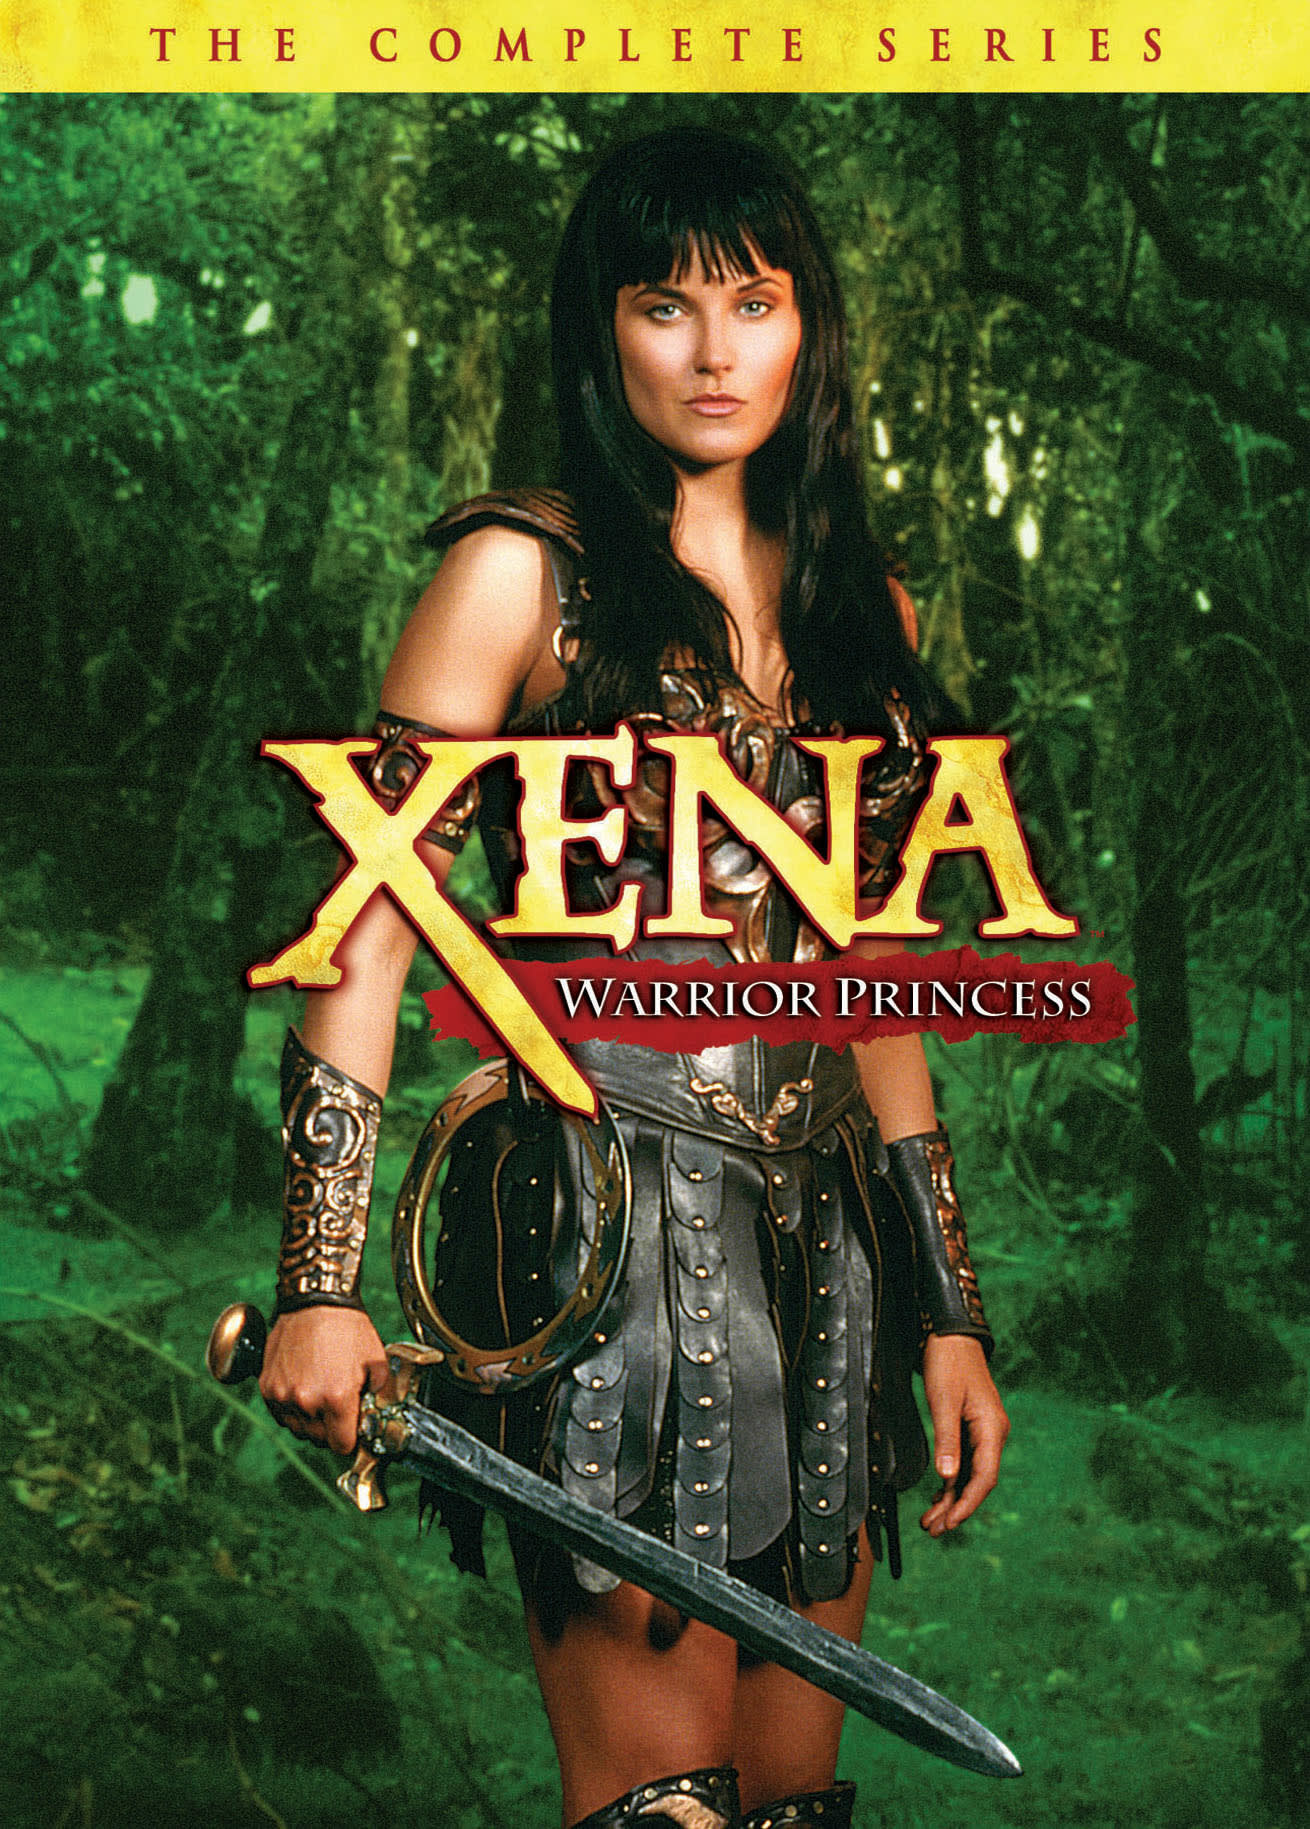 Xena: Warrior Princess - The Complete Series [DVD]